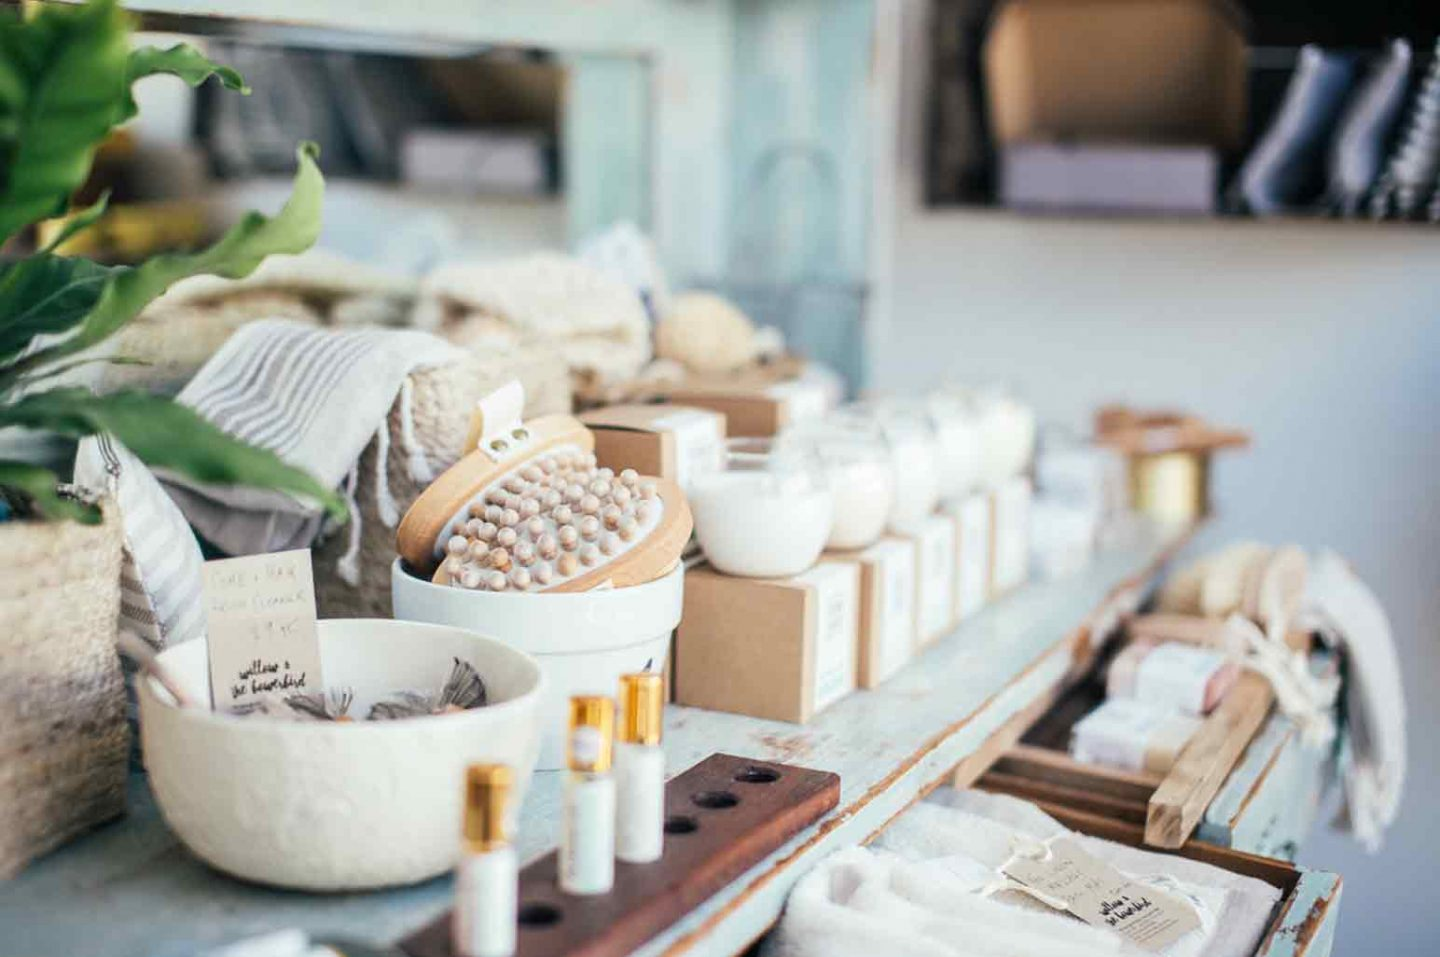 Choosing Skincare Products